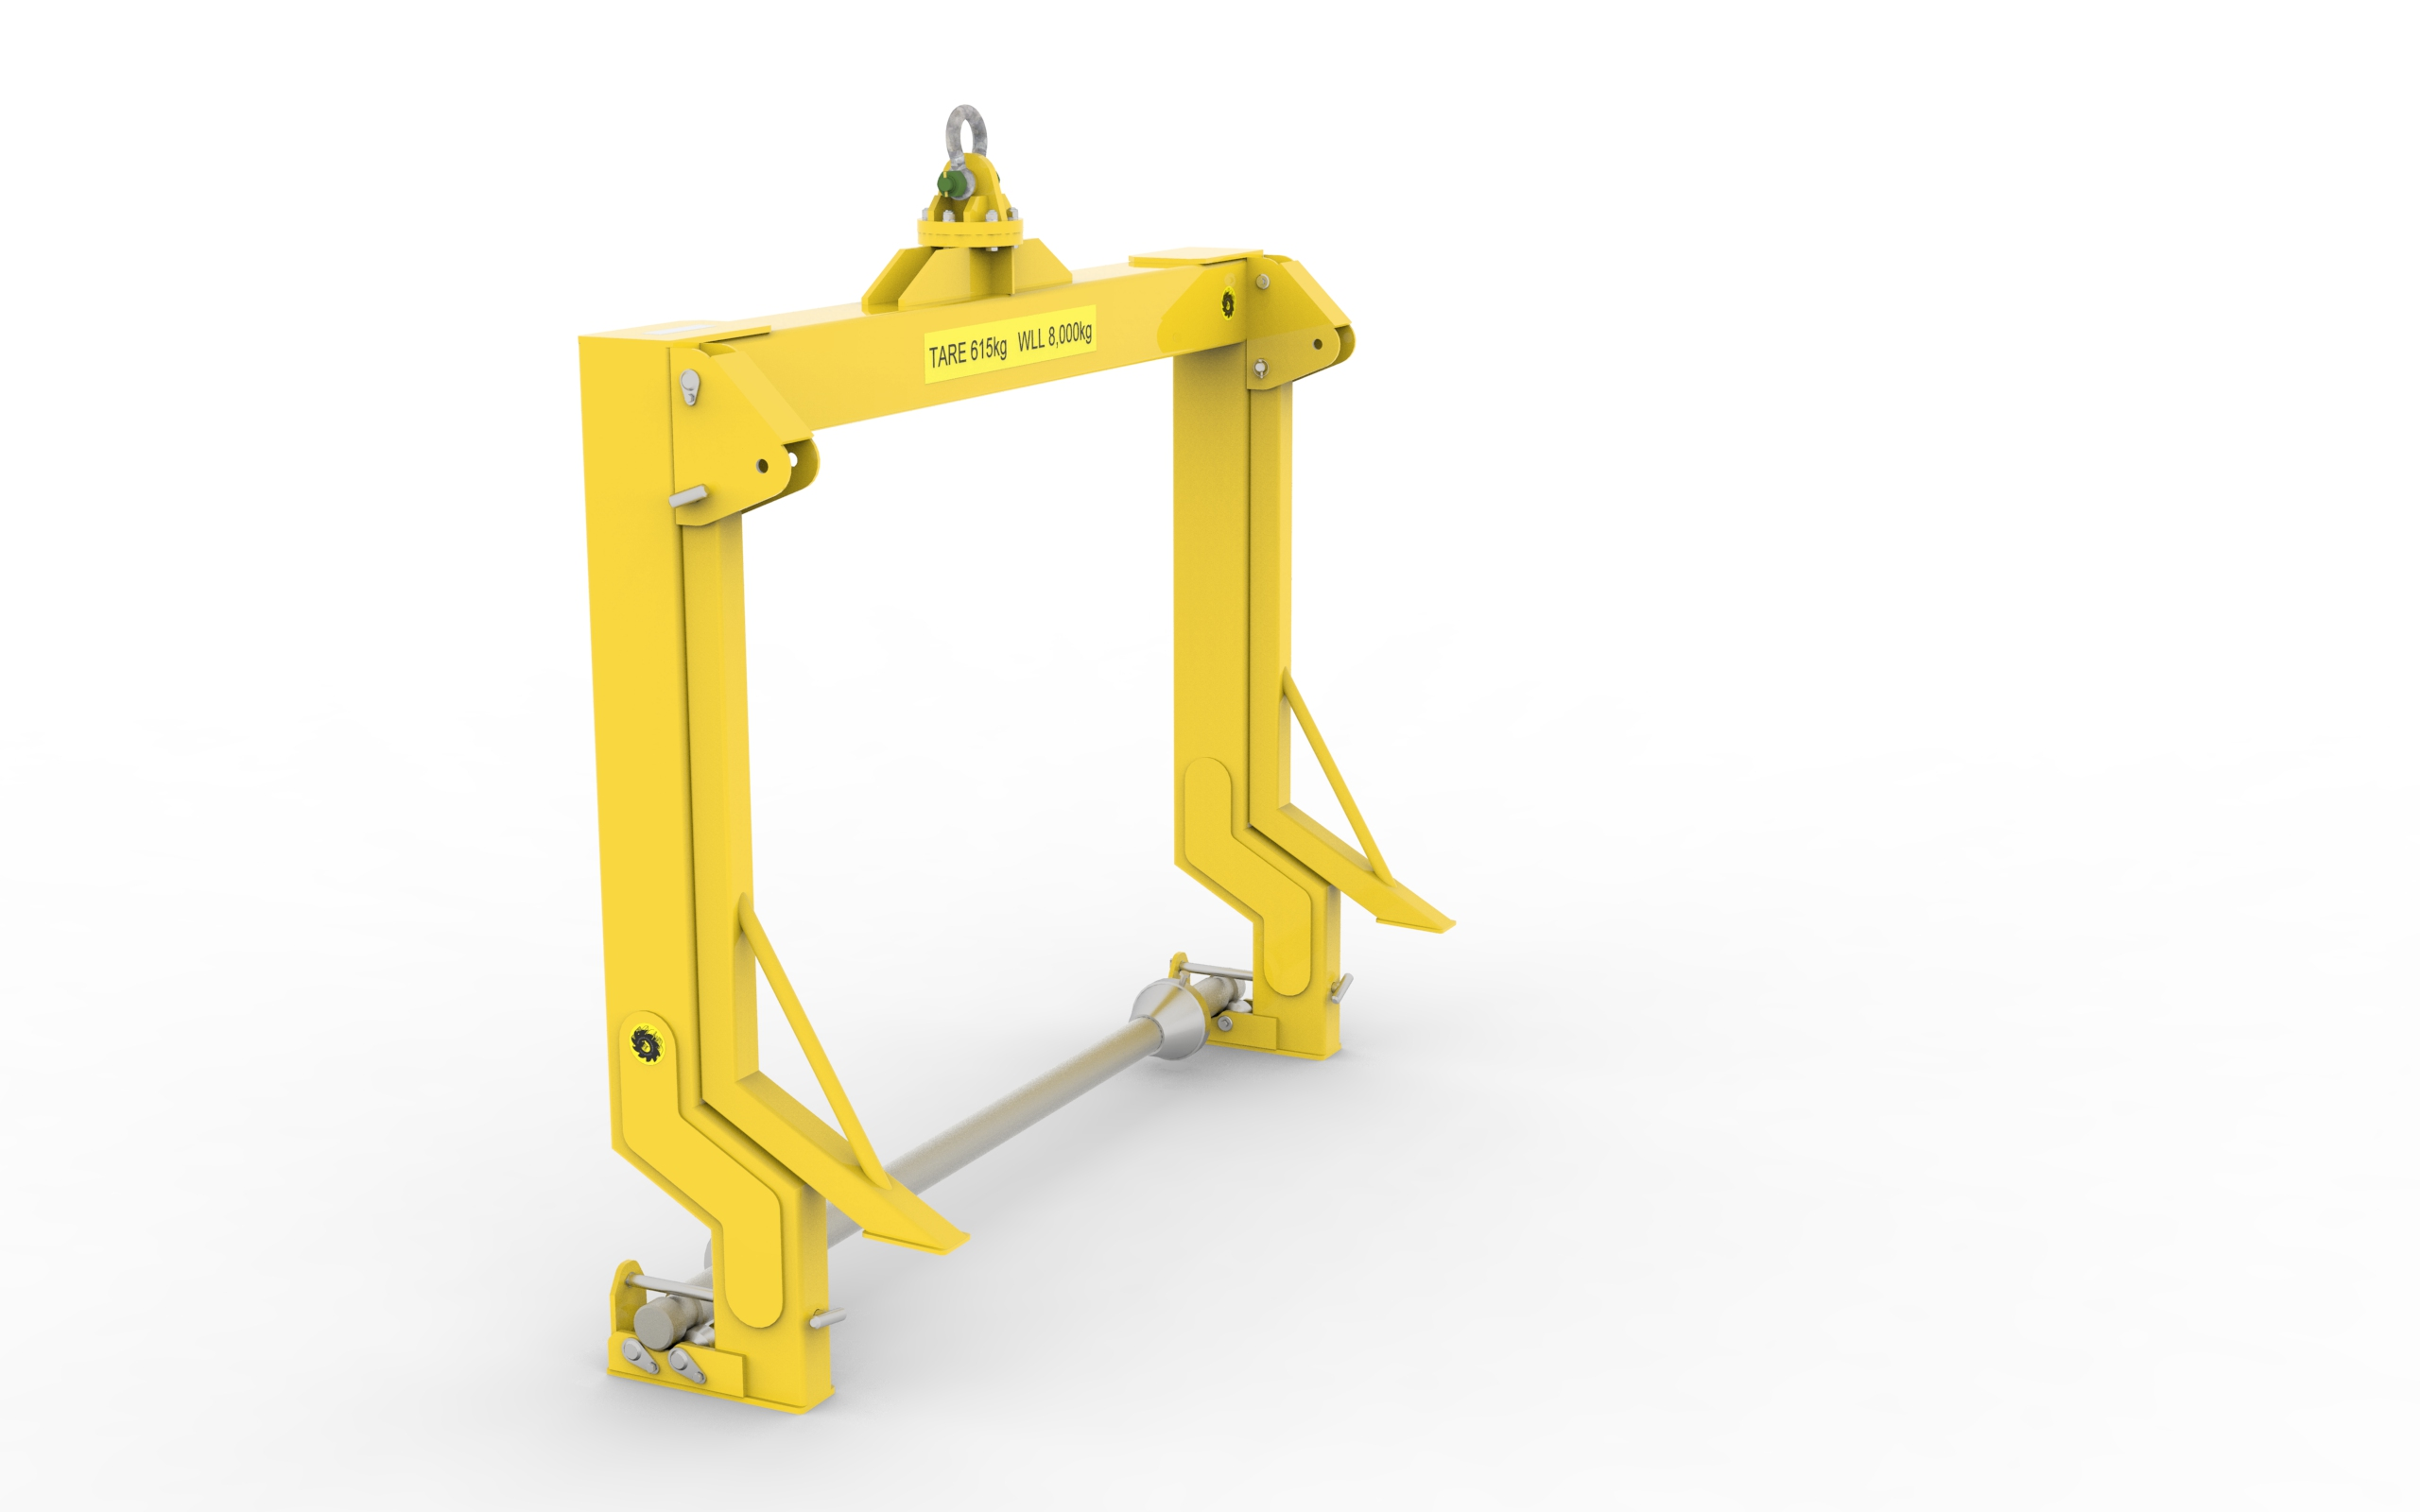 Integrated drum handler and cable layer for machines.